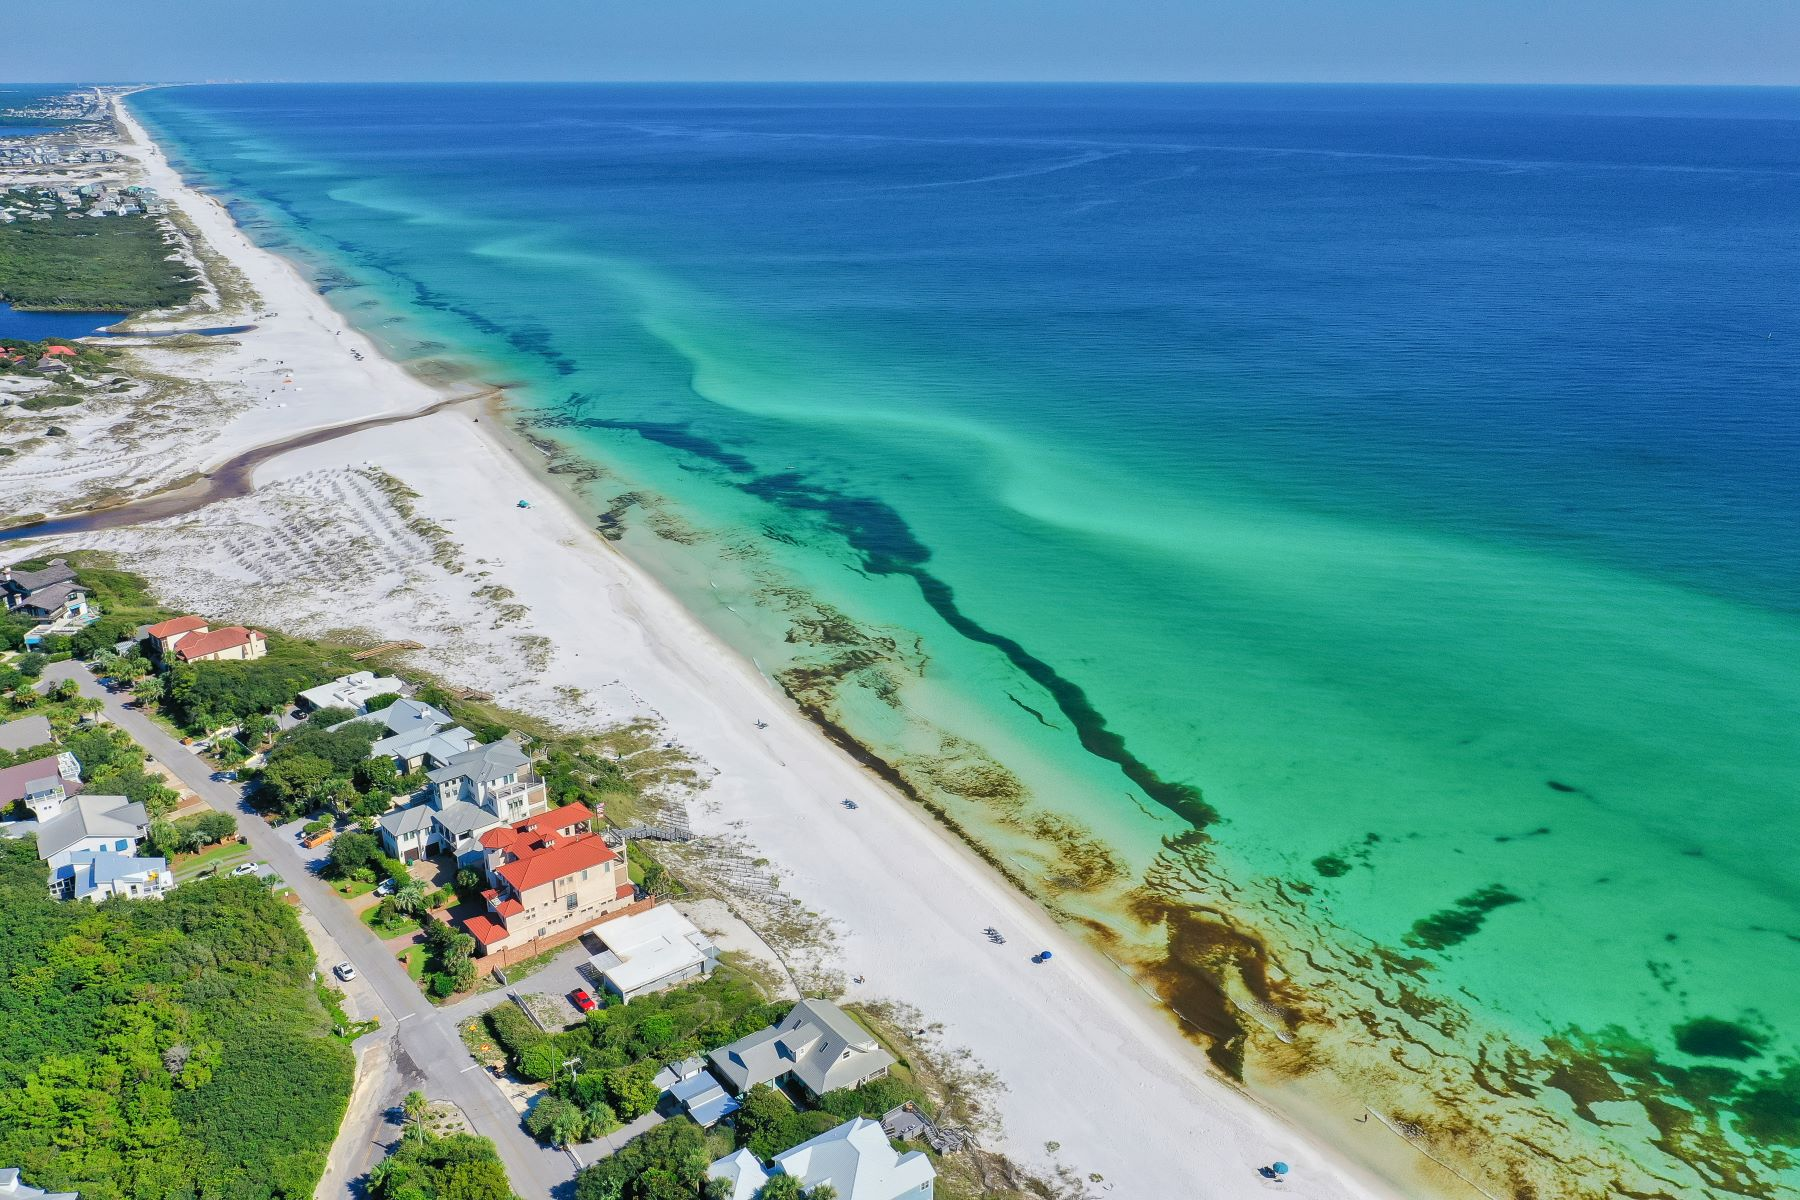 Terreno por un Venta en Eighty on the Gulf of Mexico 740 Blue Mountain Road, Santa Rosa Beach, Florida 32459 Estados Unidos